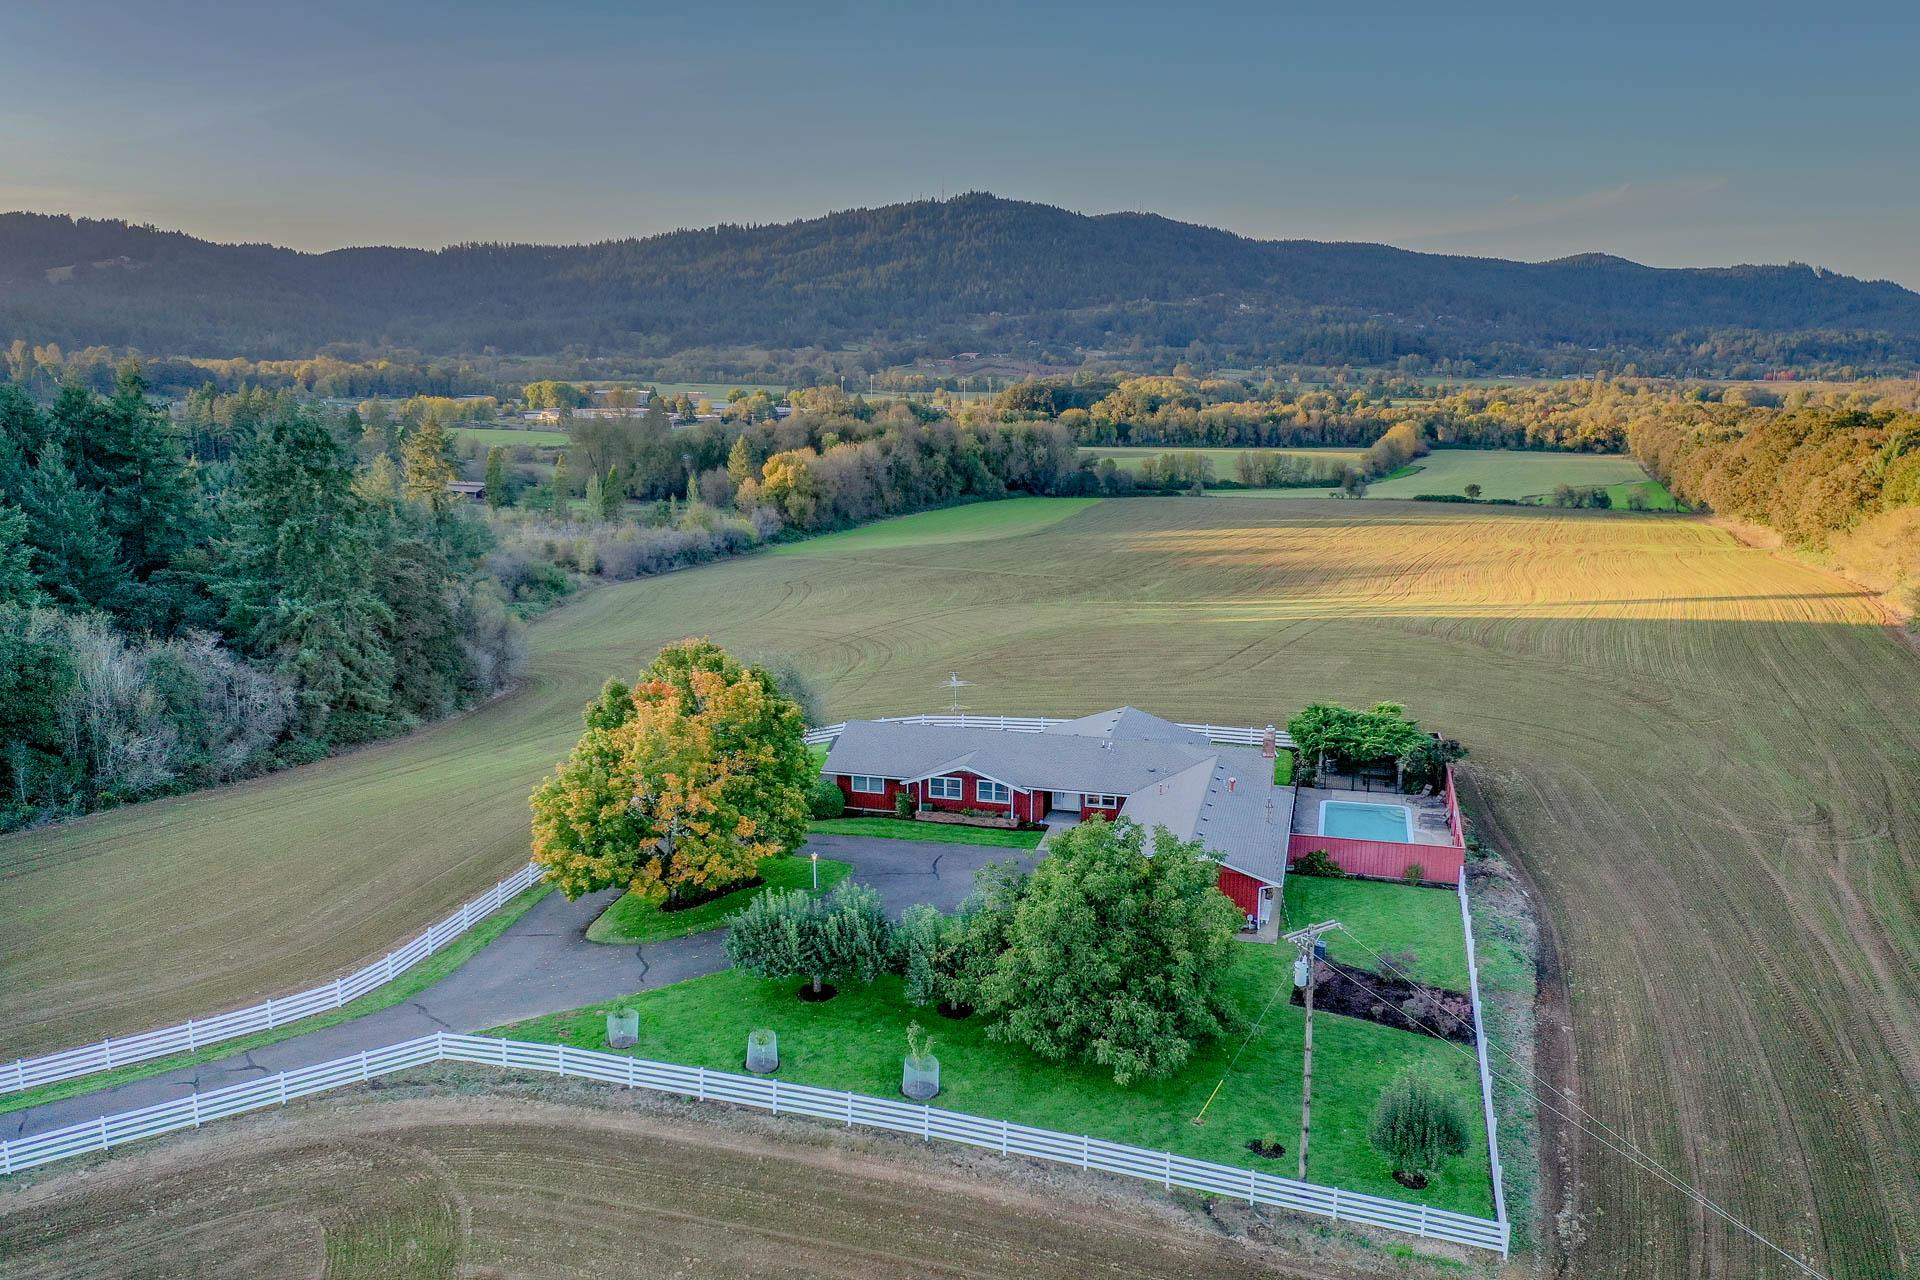 November aerial shot of Highland Acres.Highland Acres - View of the Outdoor Swimming Pool